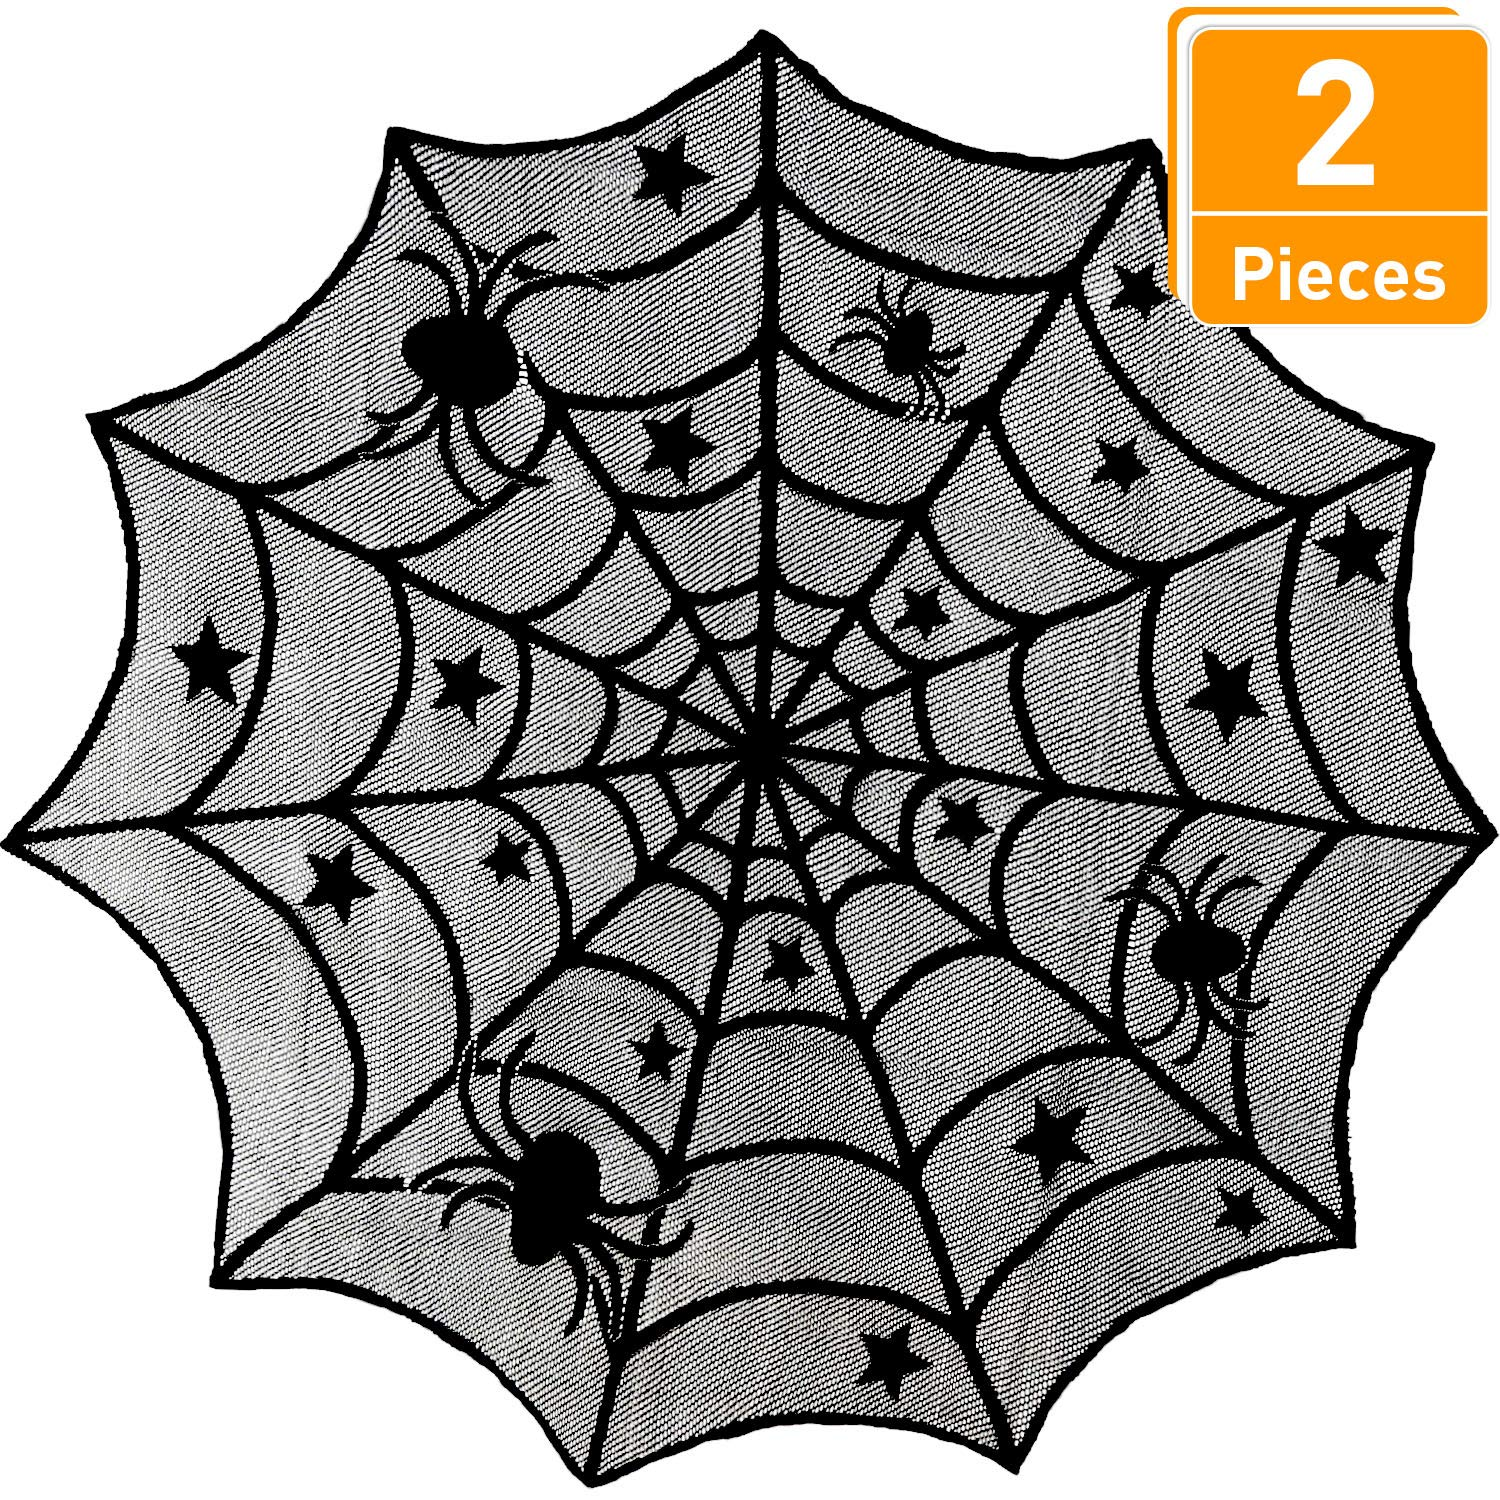 Blulu 2 Pieces Black Spider Web Tablecloth Creepy Round Lace Table Cloth for Halloween Party Decorations Supplies, 40 Inches Diameter